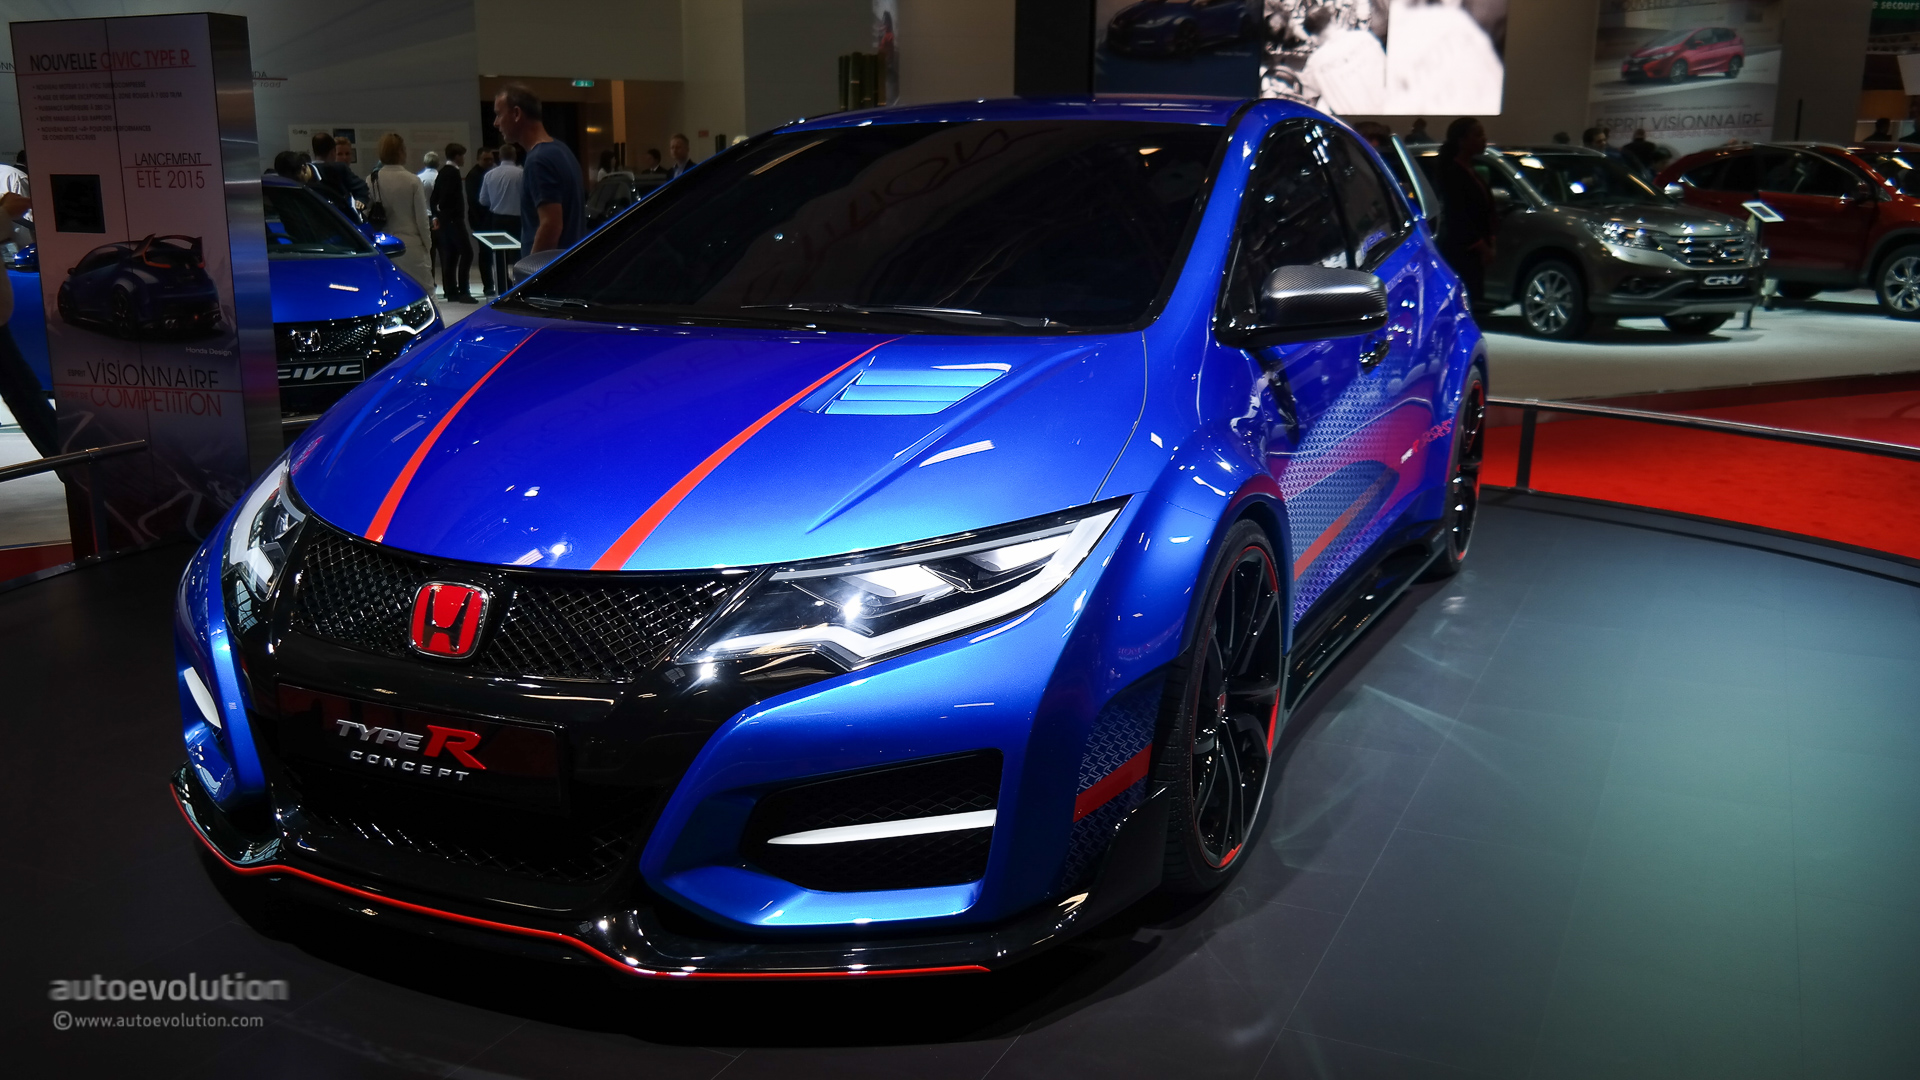 Honda Civic Type R Release Date Usa >> 2016 Honda Civic Type R Usa Gtpccr Com